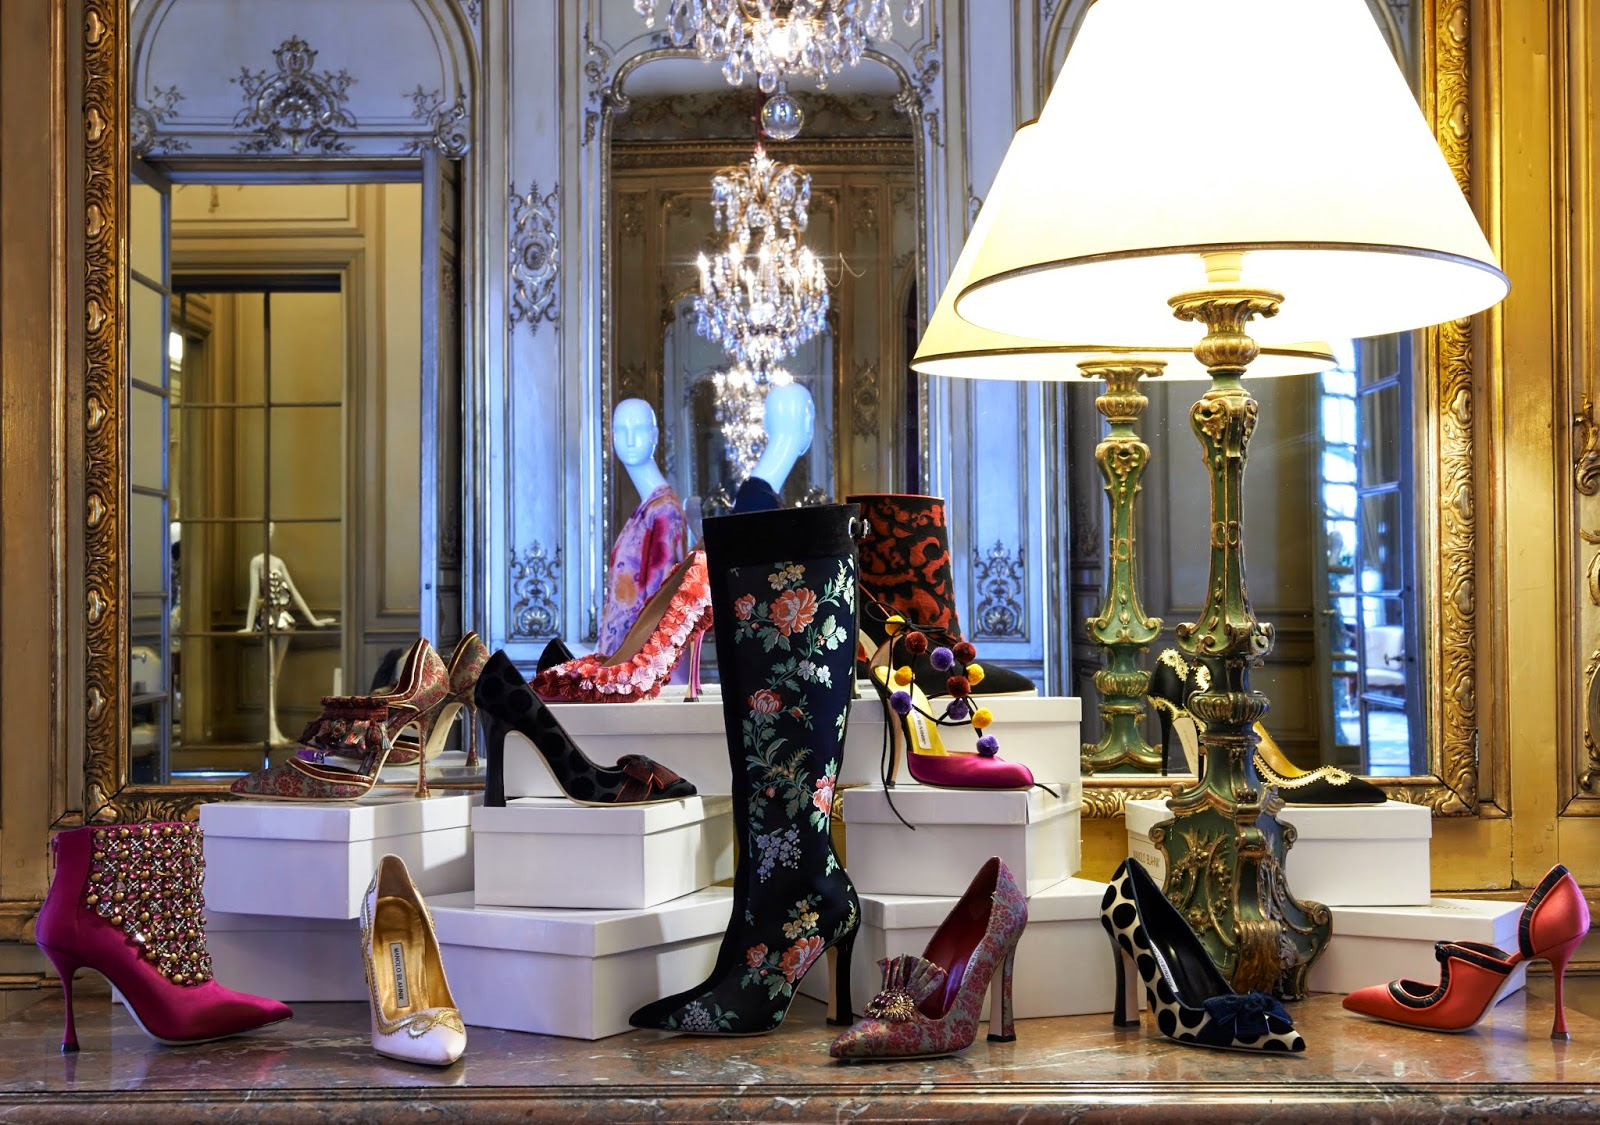 Manolo Blahnik Autumn/Winter 2014-2015 at the Made in Spain: La mode au - delà des frontières exhibit